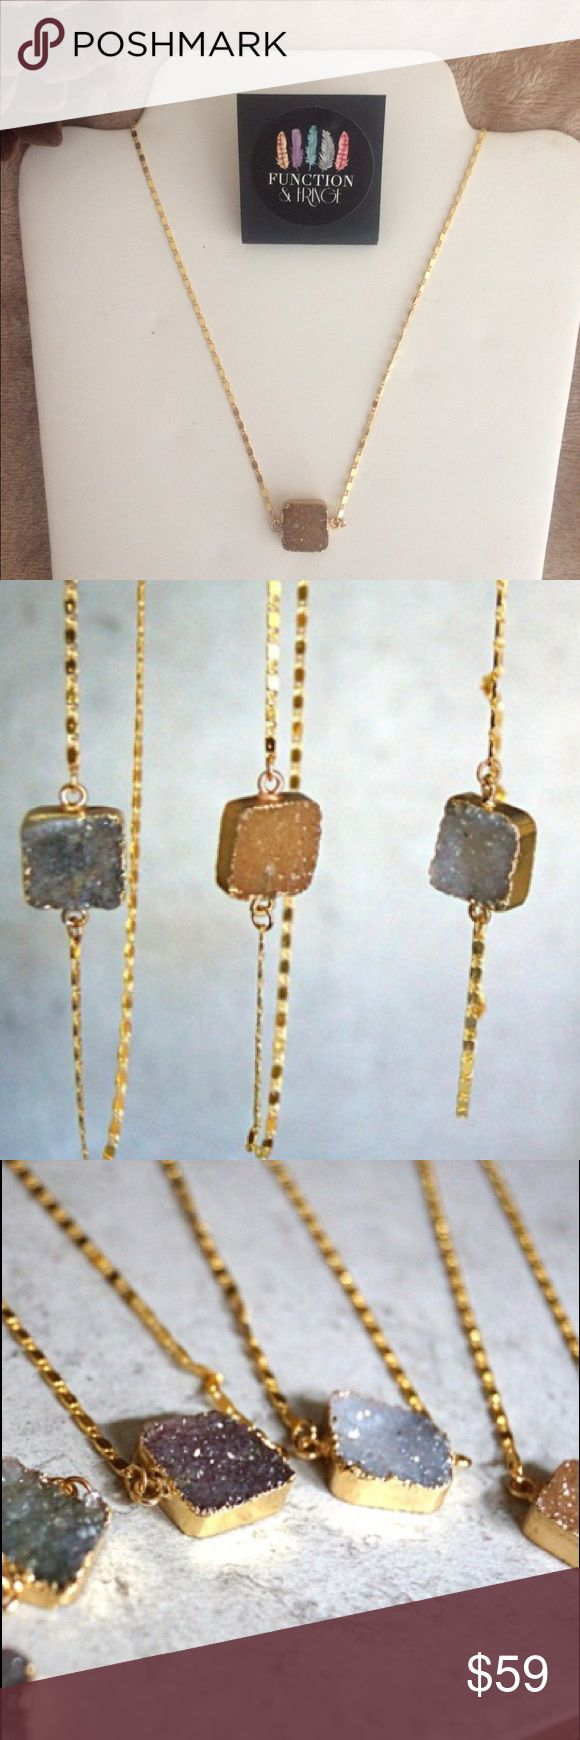 """Function & Fringe Natural Druzy Necklace Beautiful Neutral Tone Peach Druzy placed on a 16"""" 18k gold plated chain and finished with the Function & Fringe signature gold feather at the clasp. No two are the same! This is a staple boho layering piece! Designed and made in California.  Function & Fringe Jewelry Necklaces"""